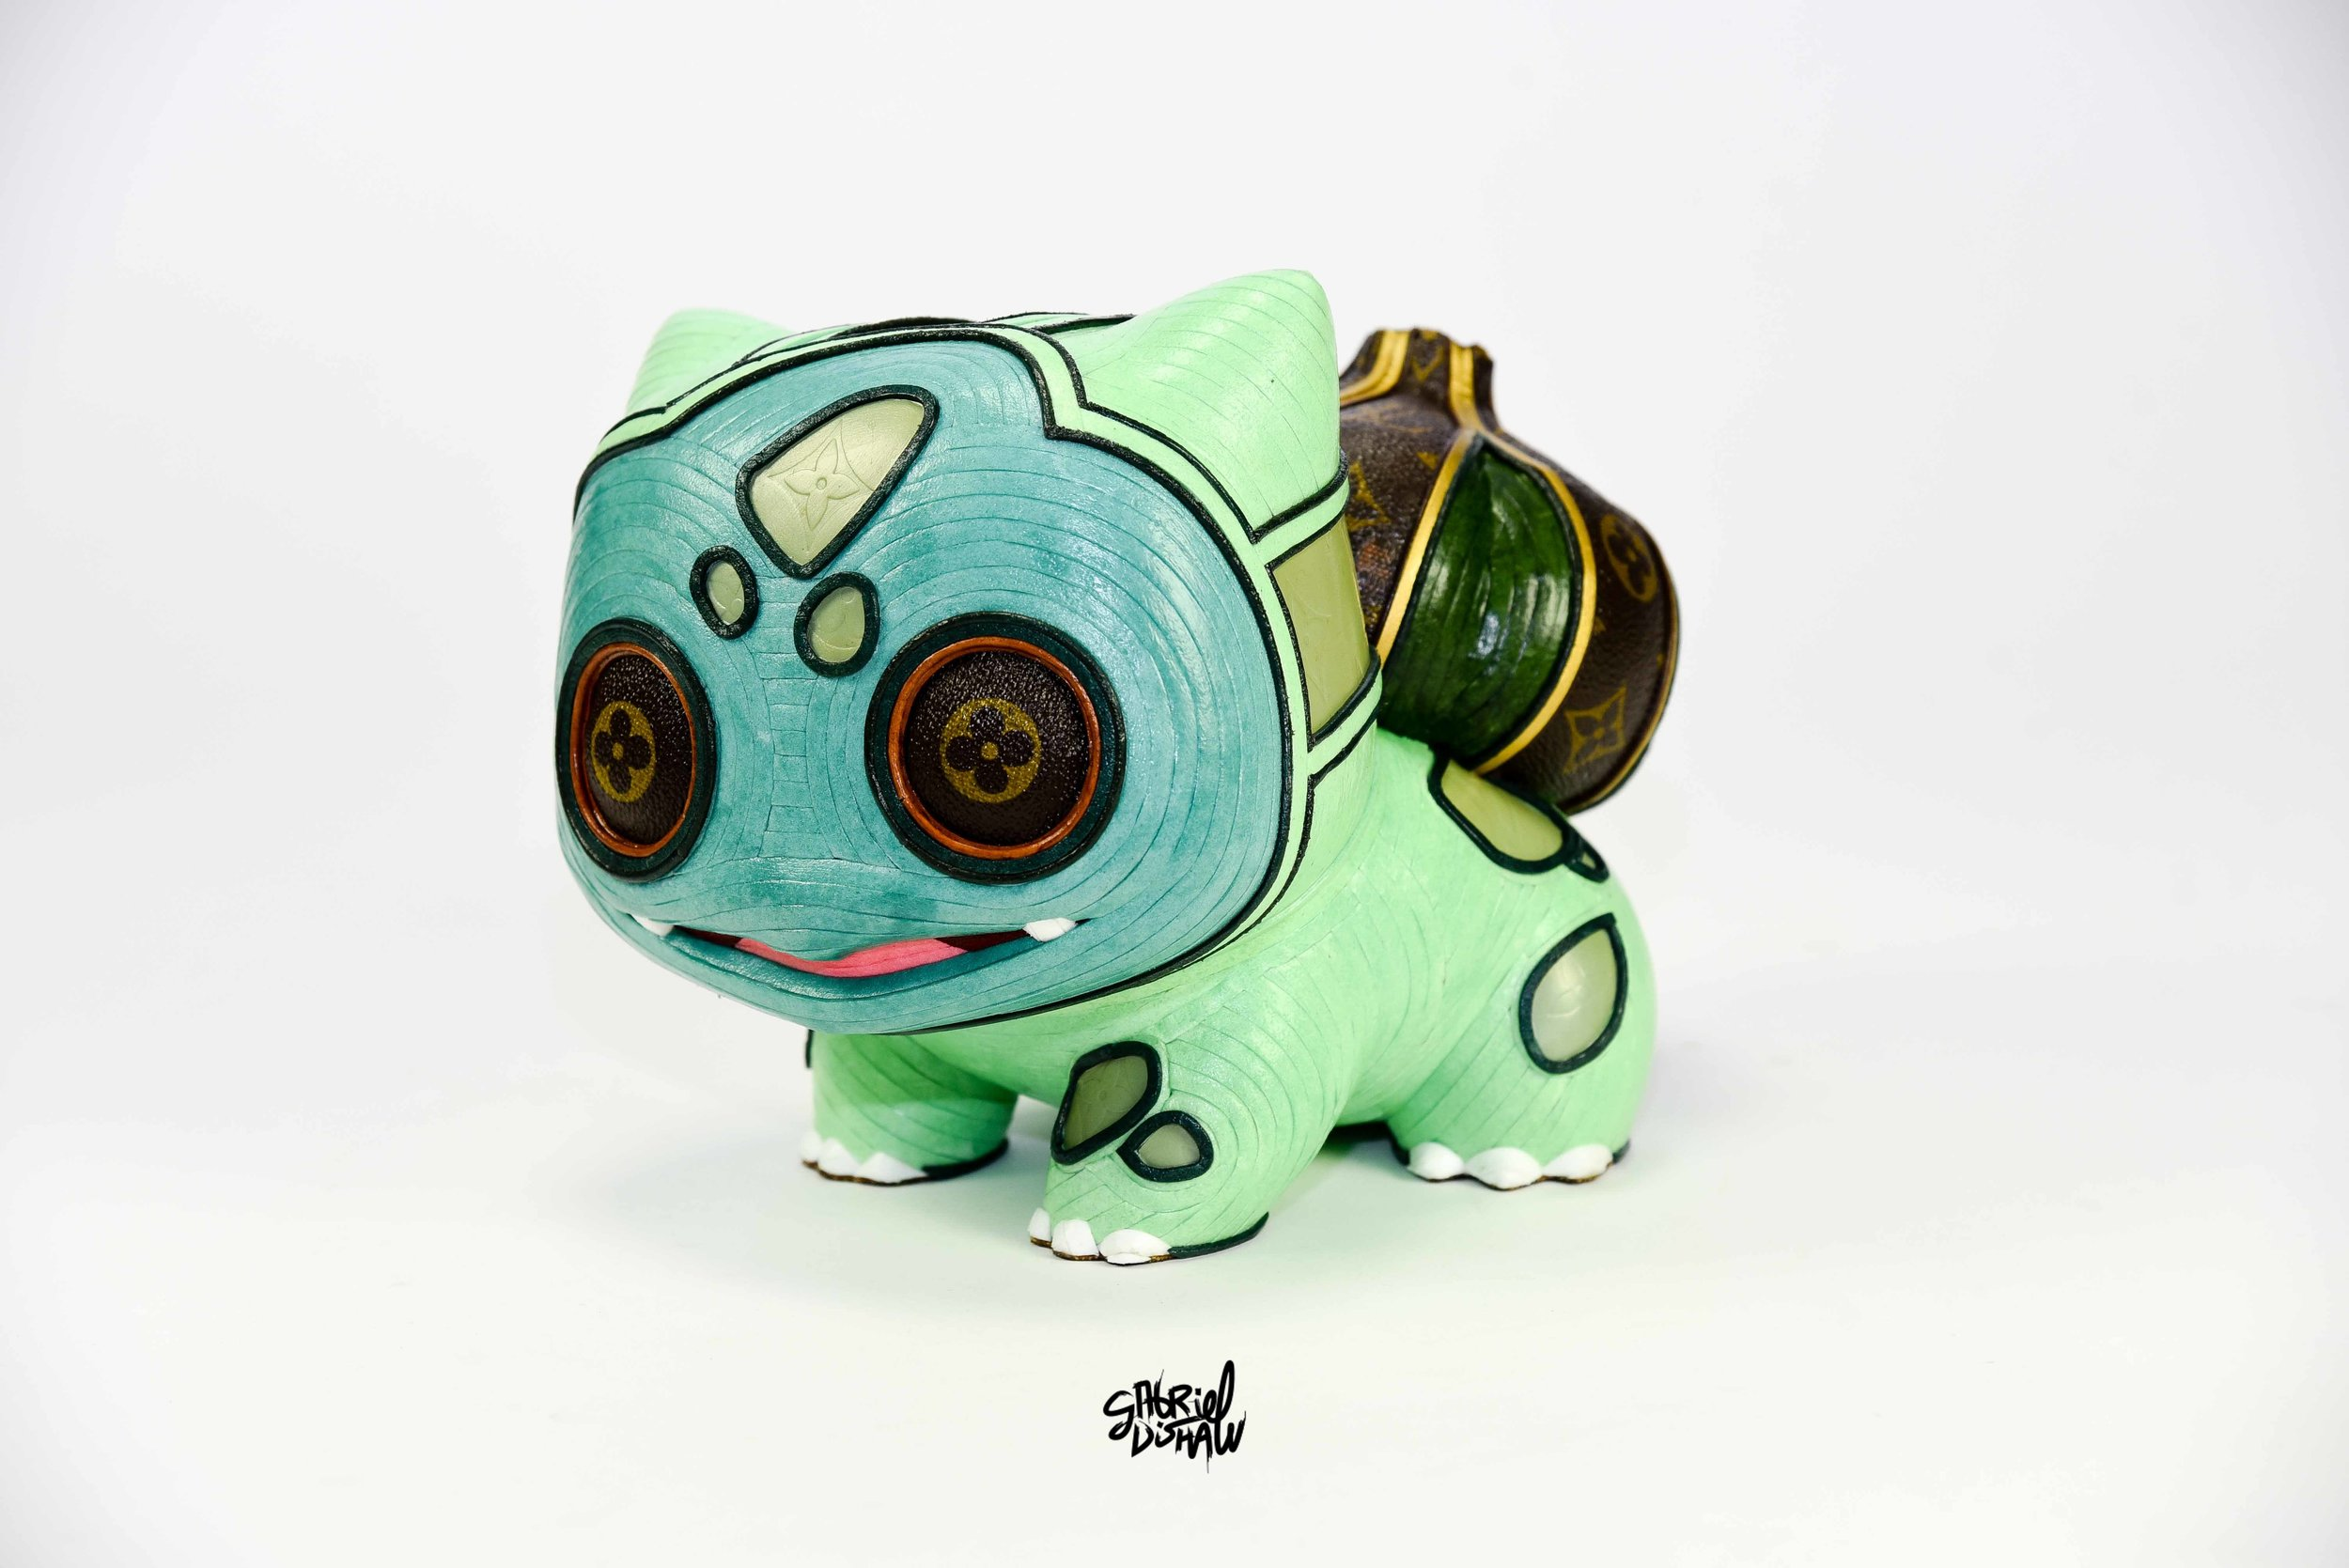 Gabriel Dishaw Bulbasaur LV (5 of 107).jpg